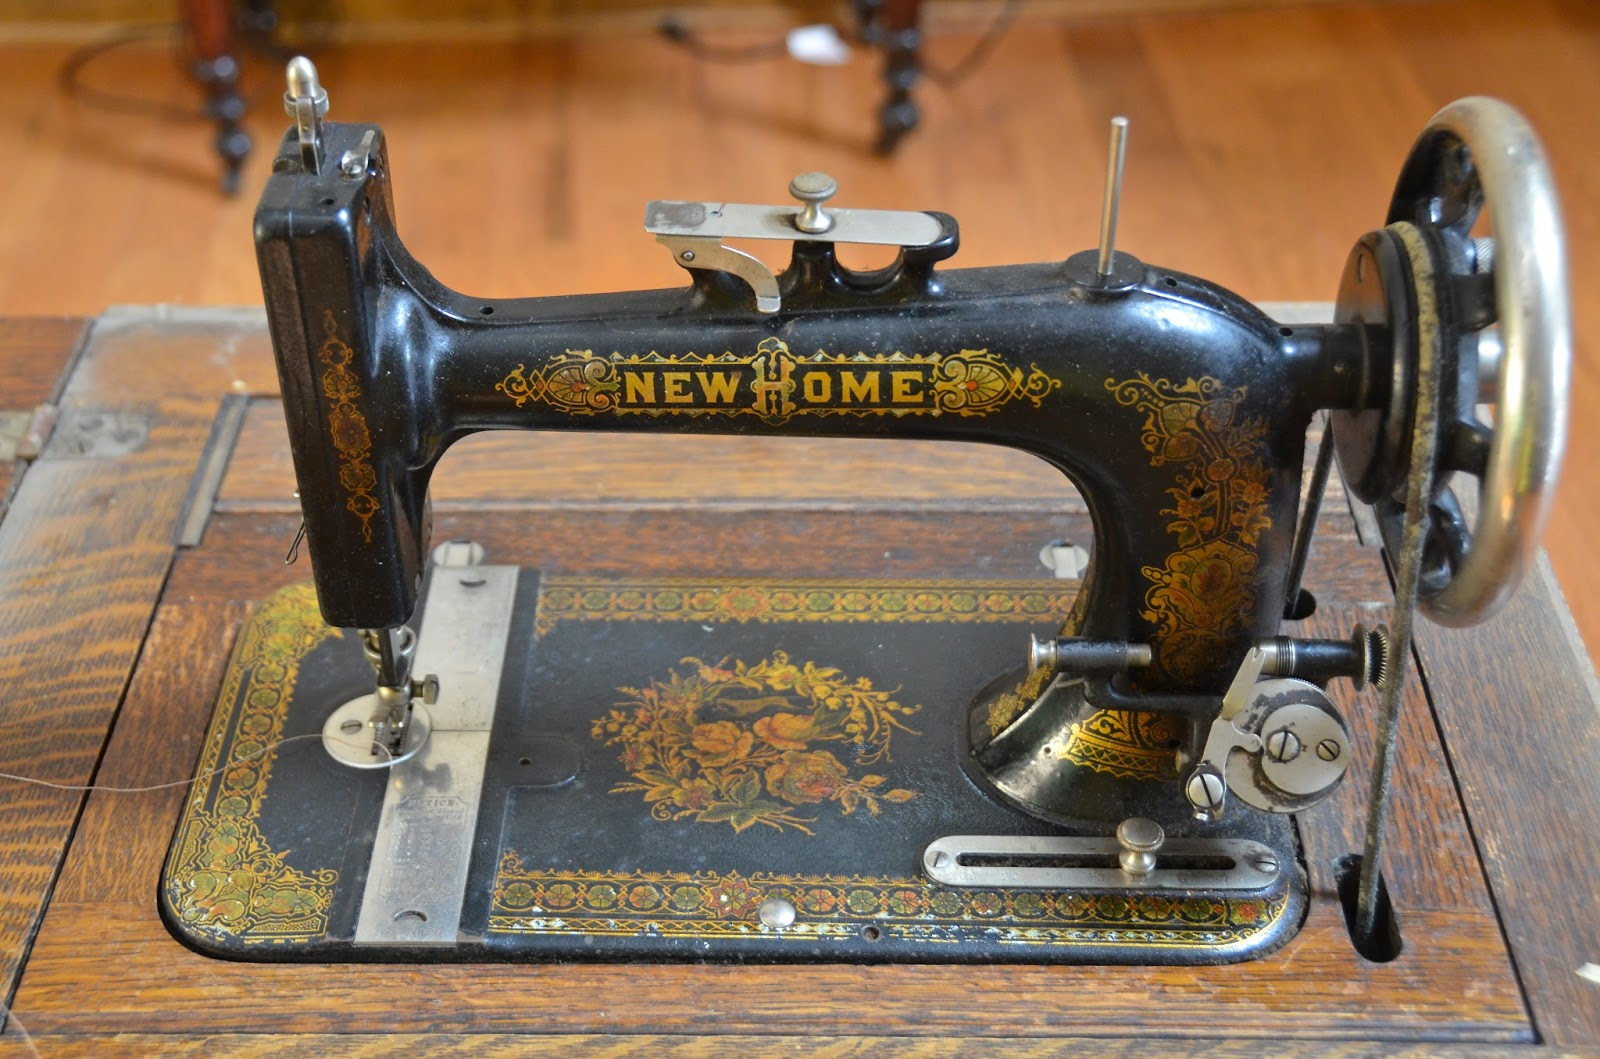 New Home Sewing Machine Serial